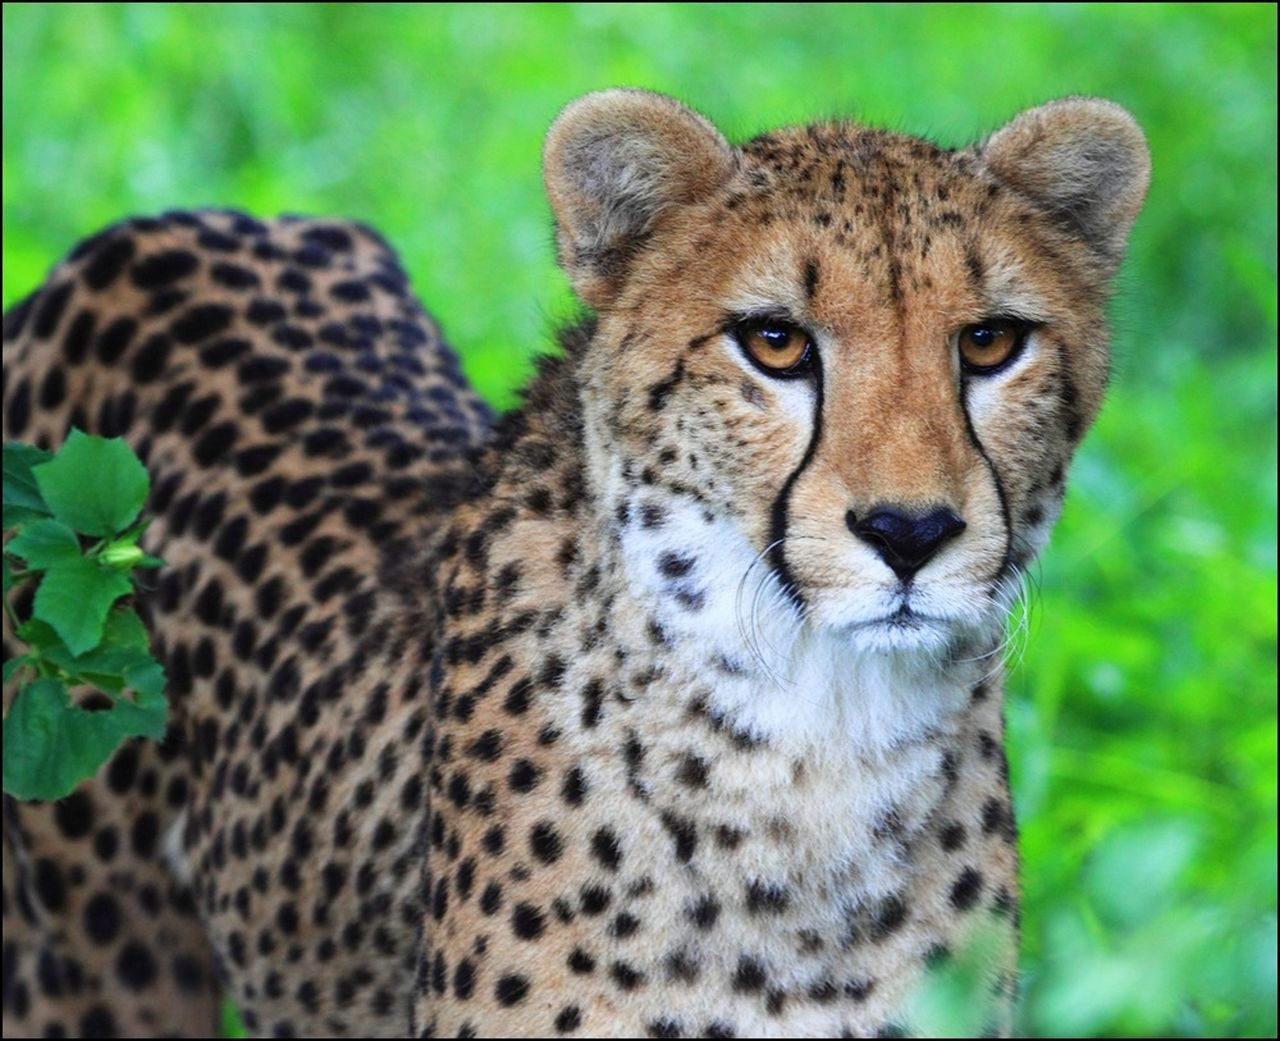 animals in the wild, animal wildlife, looking at camera, portrait, one animal, animal themes, focus on foreground, day, safari animals, outdoors, no people, cheetah, nature, close-up, mammal, leopard